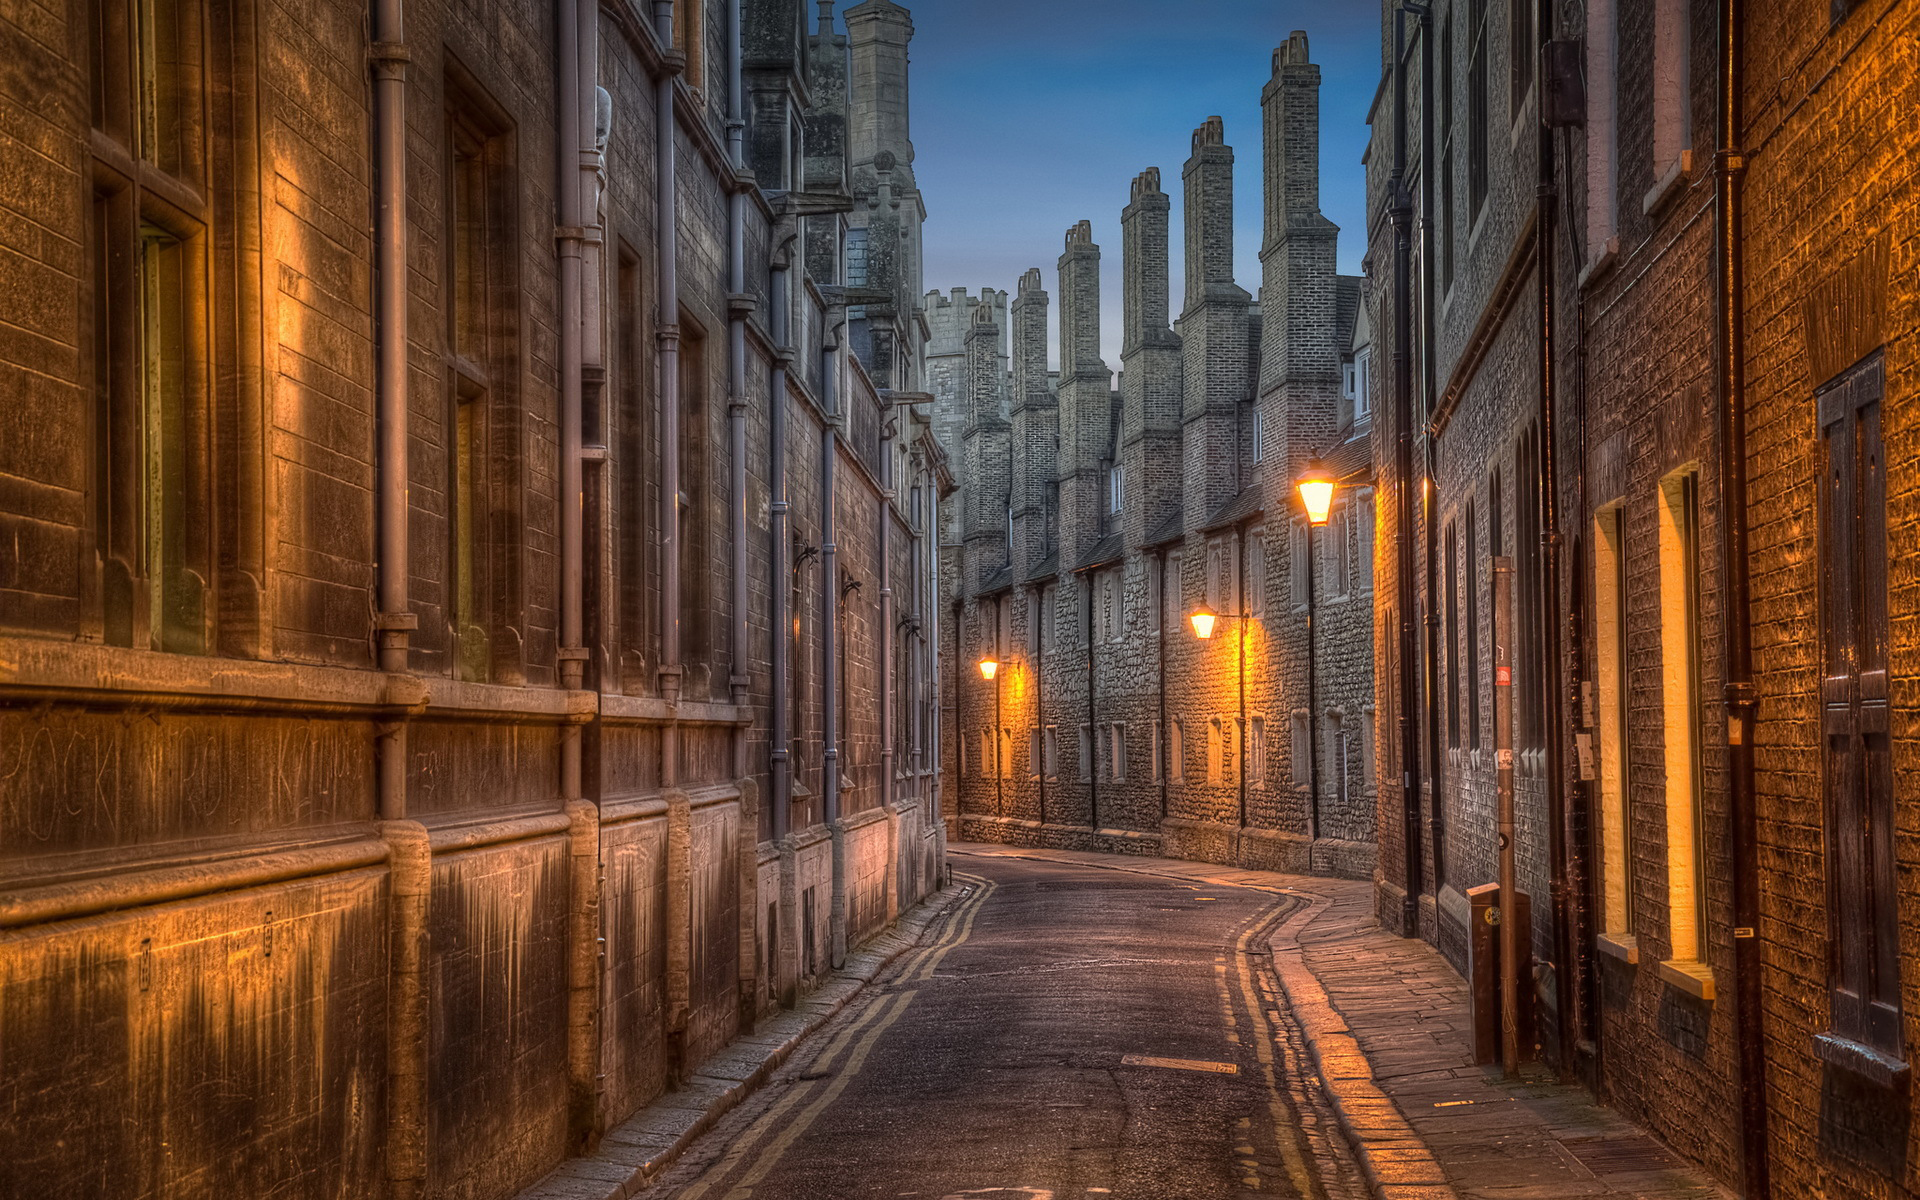 narrow streets wallpapers high quality download free